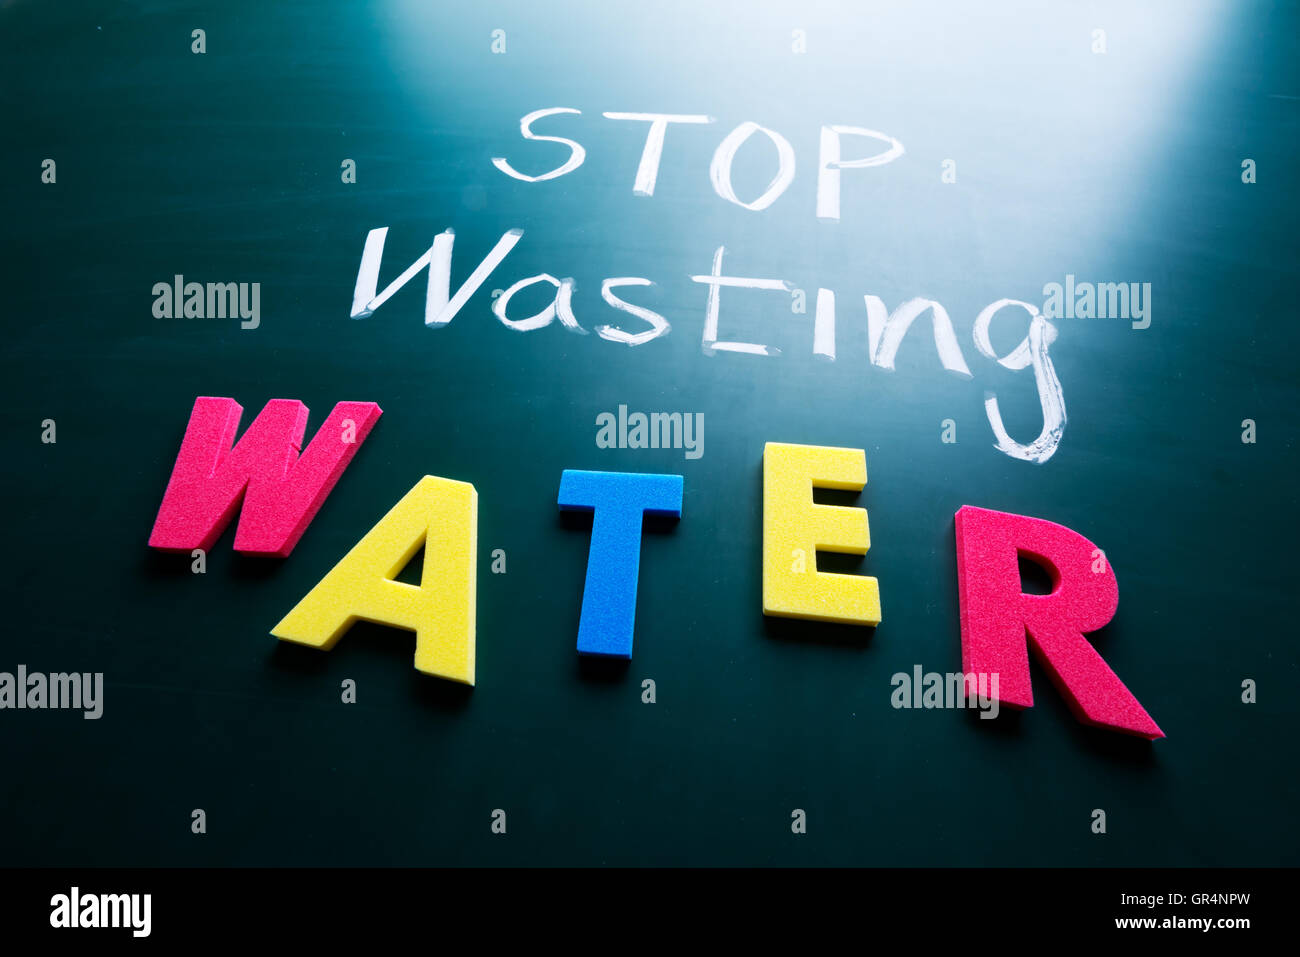 Stop wasting water concept - Stock Image